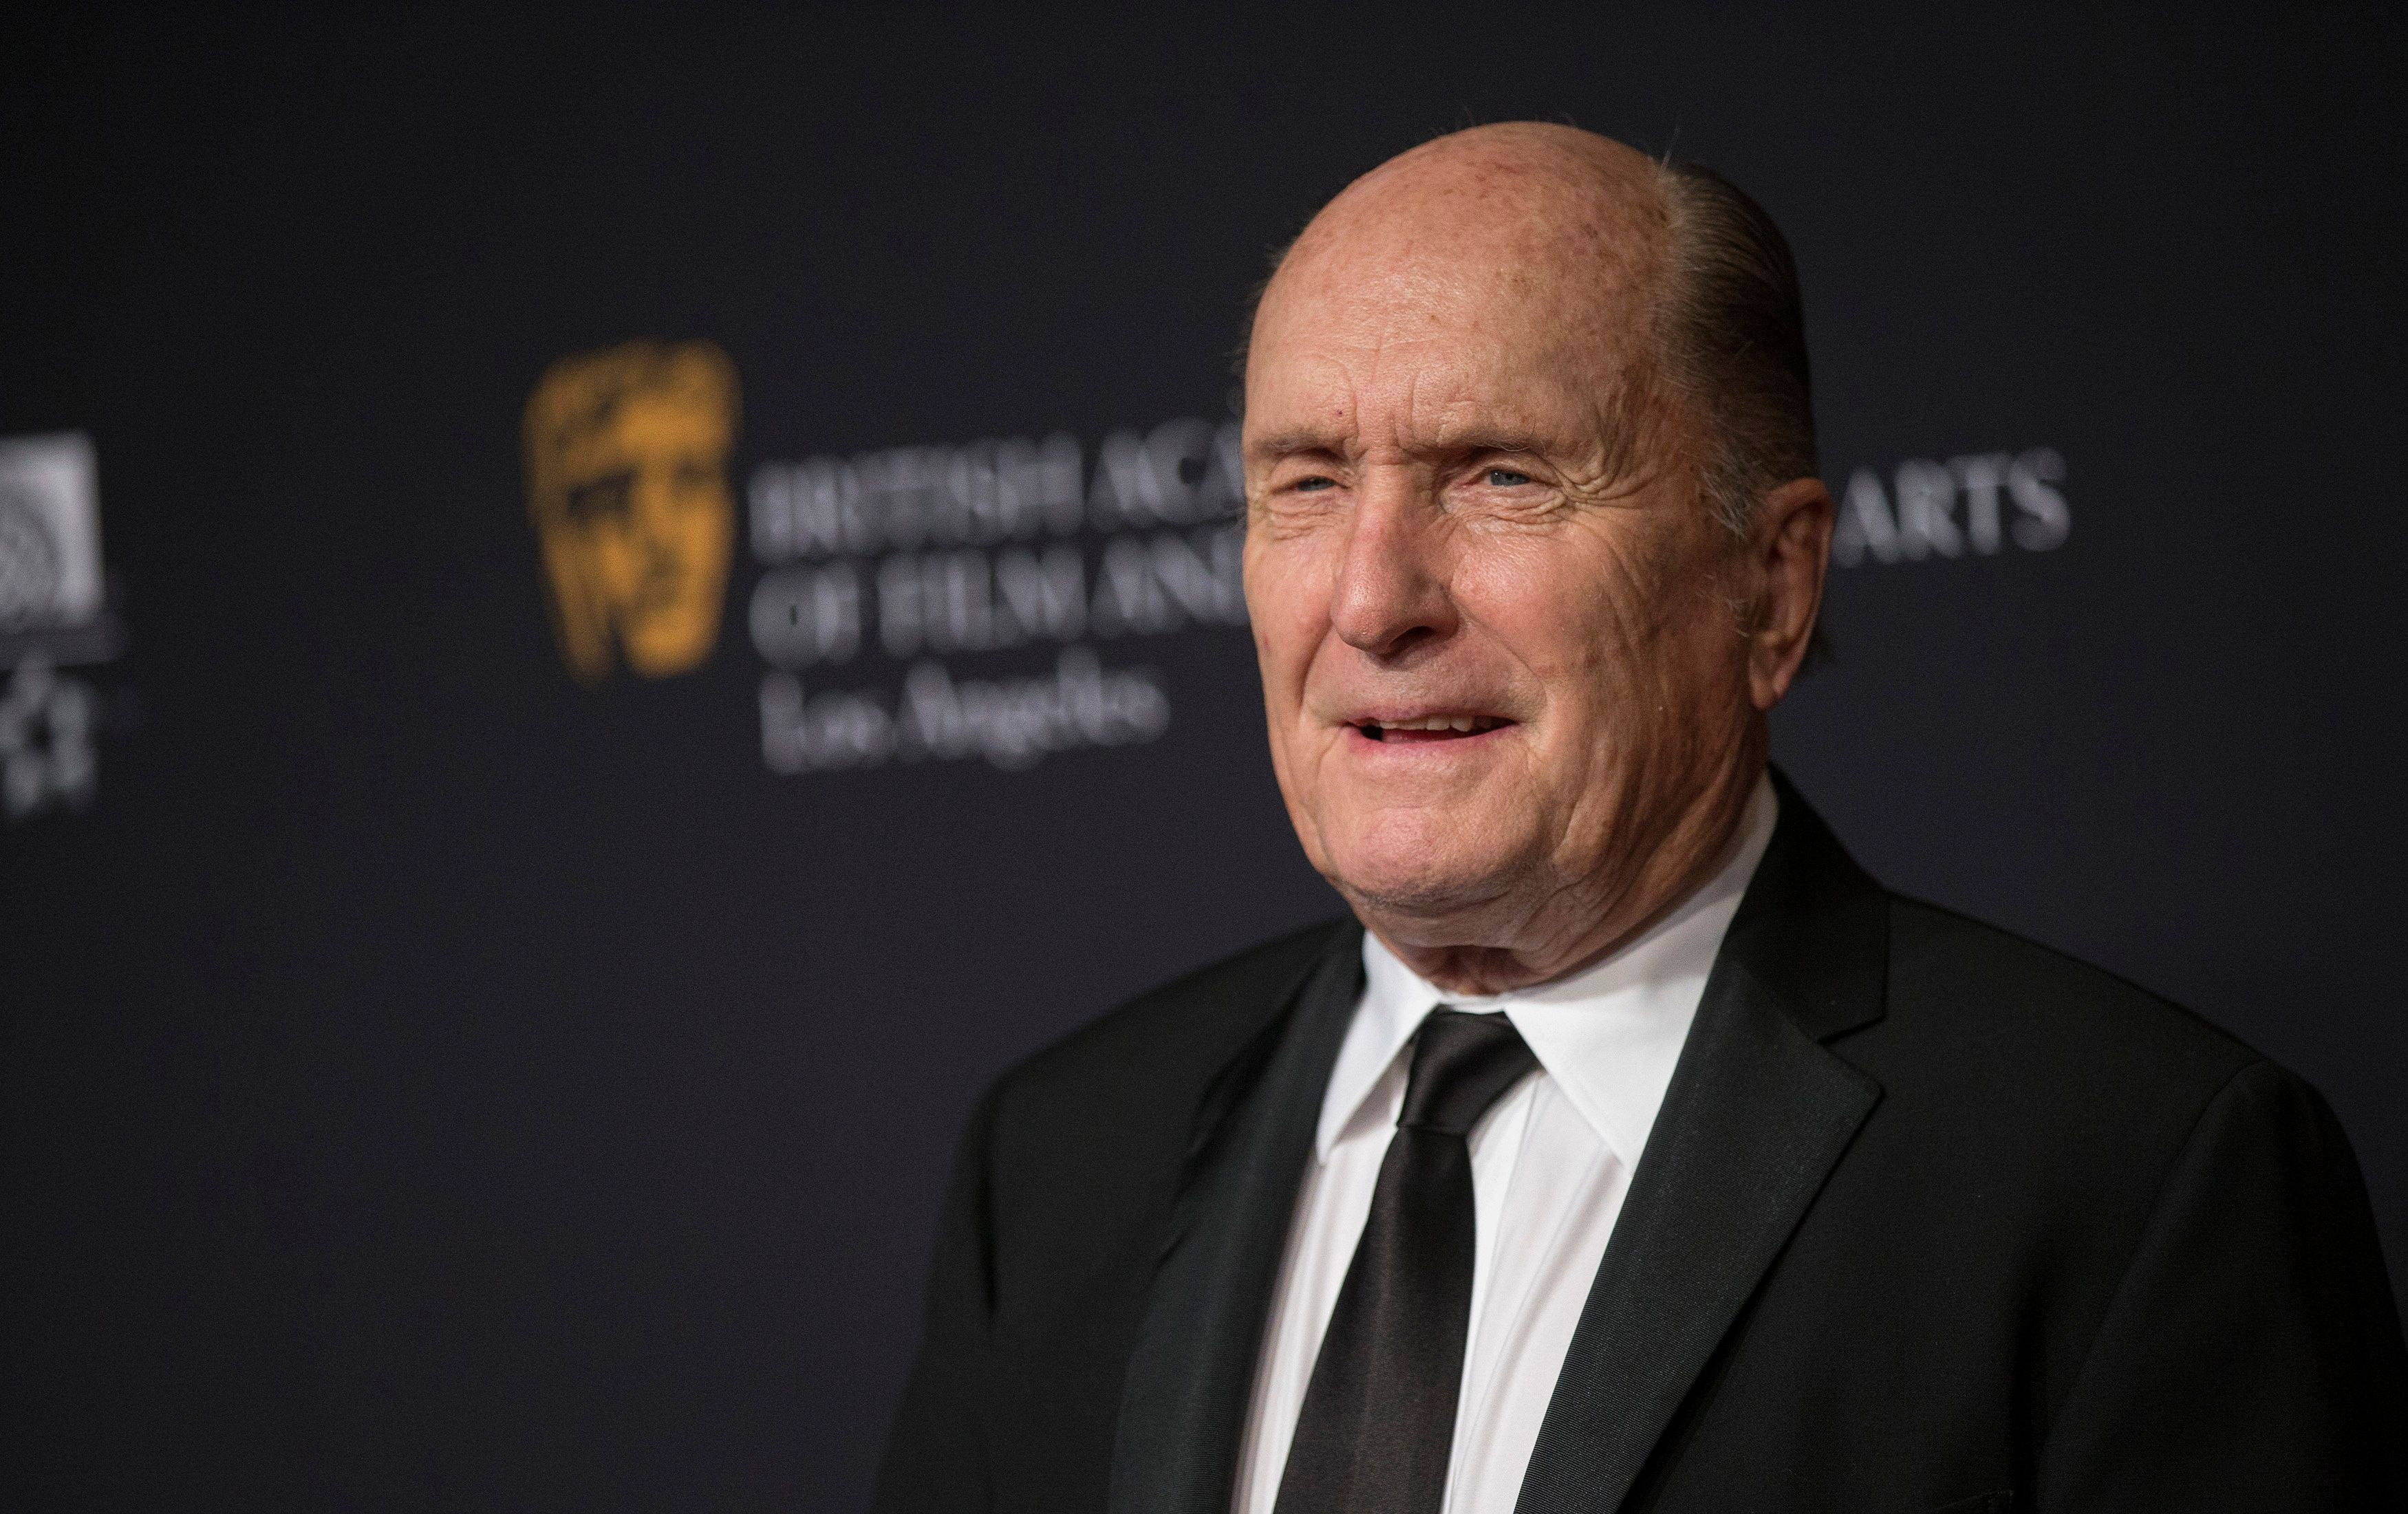 Actor Robert Duvall poses at the BAFTA Los Angeles Britannia Awards at the Beverly Hilton hotel in Beverly Hills, California October 30, 2014. REUTERS/Mario Anzuoni  (UNITED STATES - Tags: ENTERTAINMENT HEADSHOT)